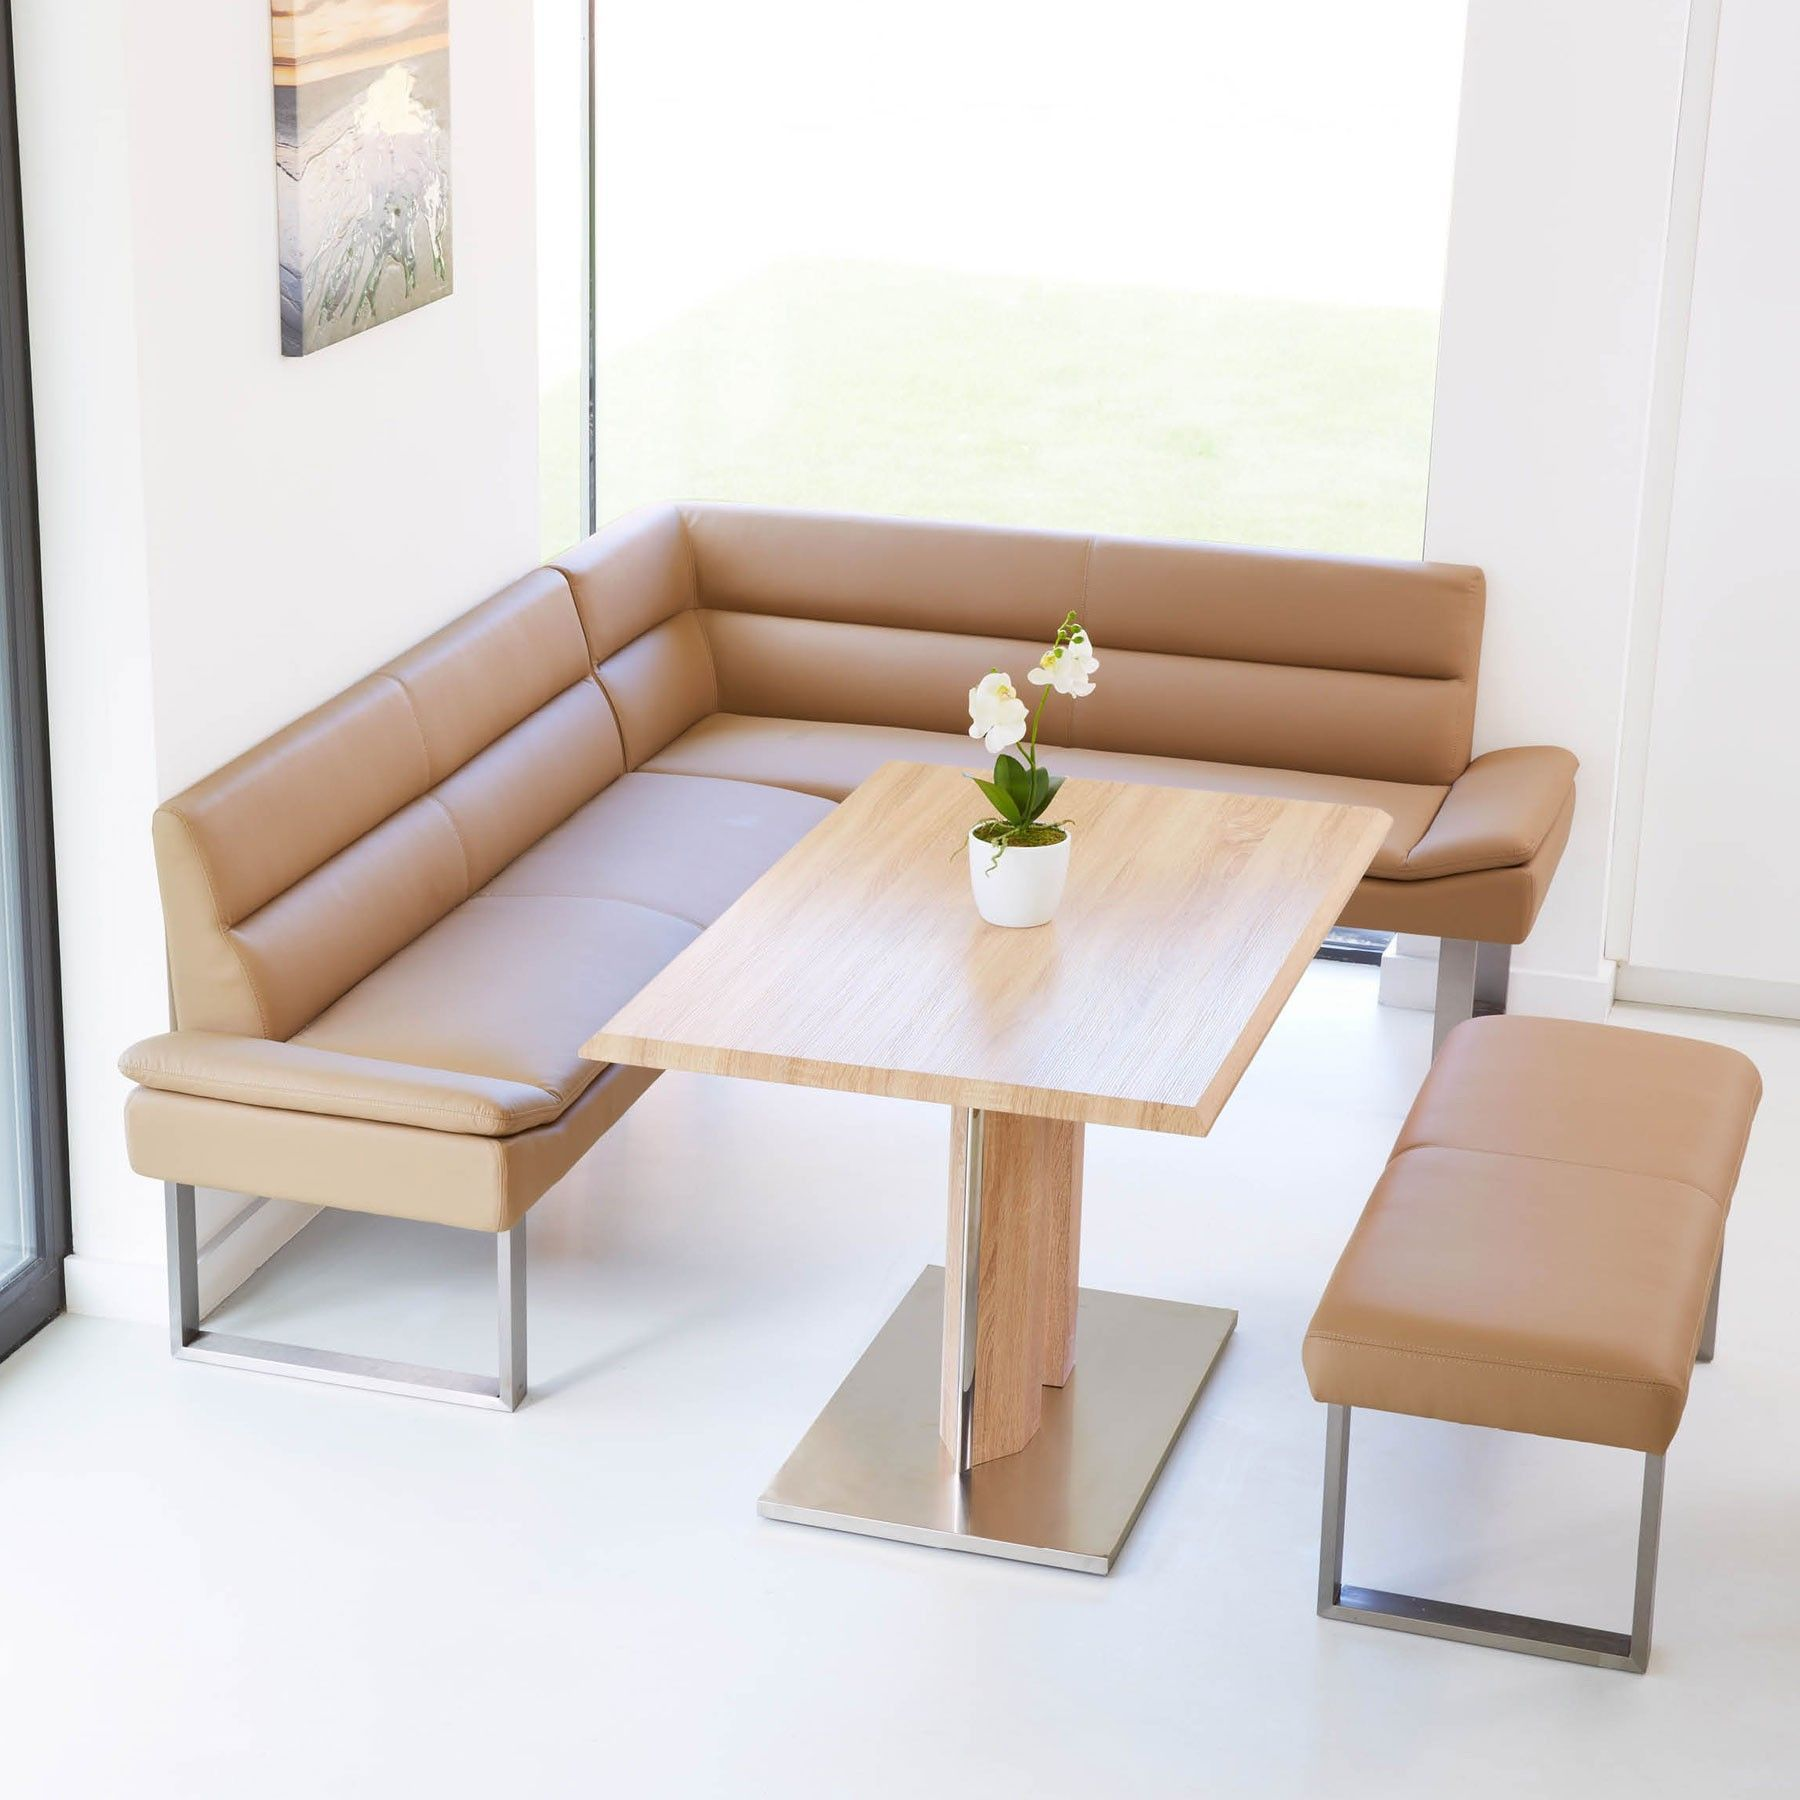 Amazing Corner Dining Table Bench Dining Room Table Living Room Sofa Design Dining Room Seating